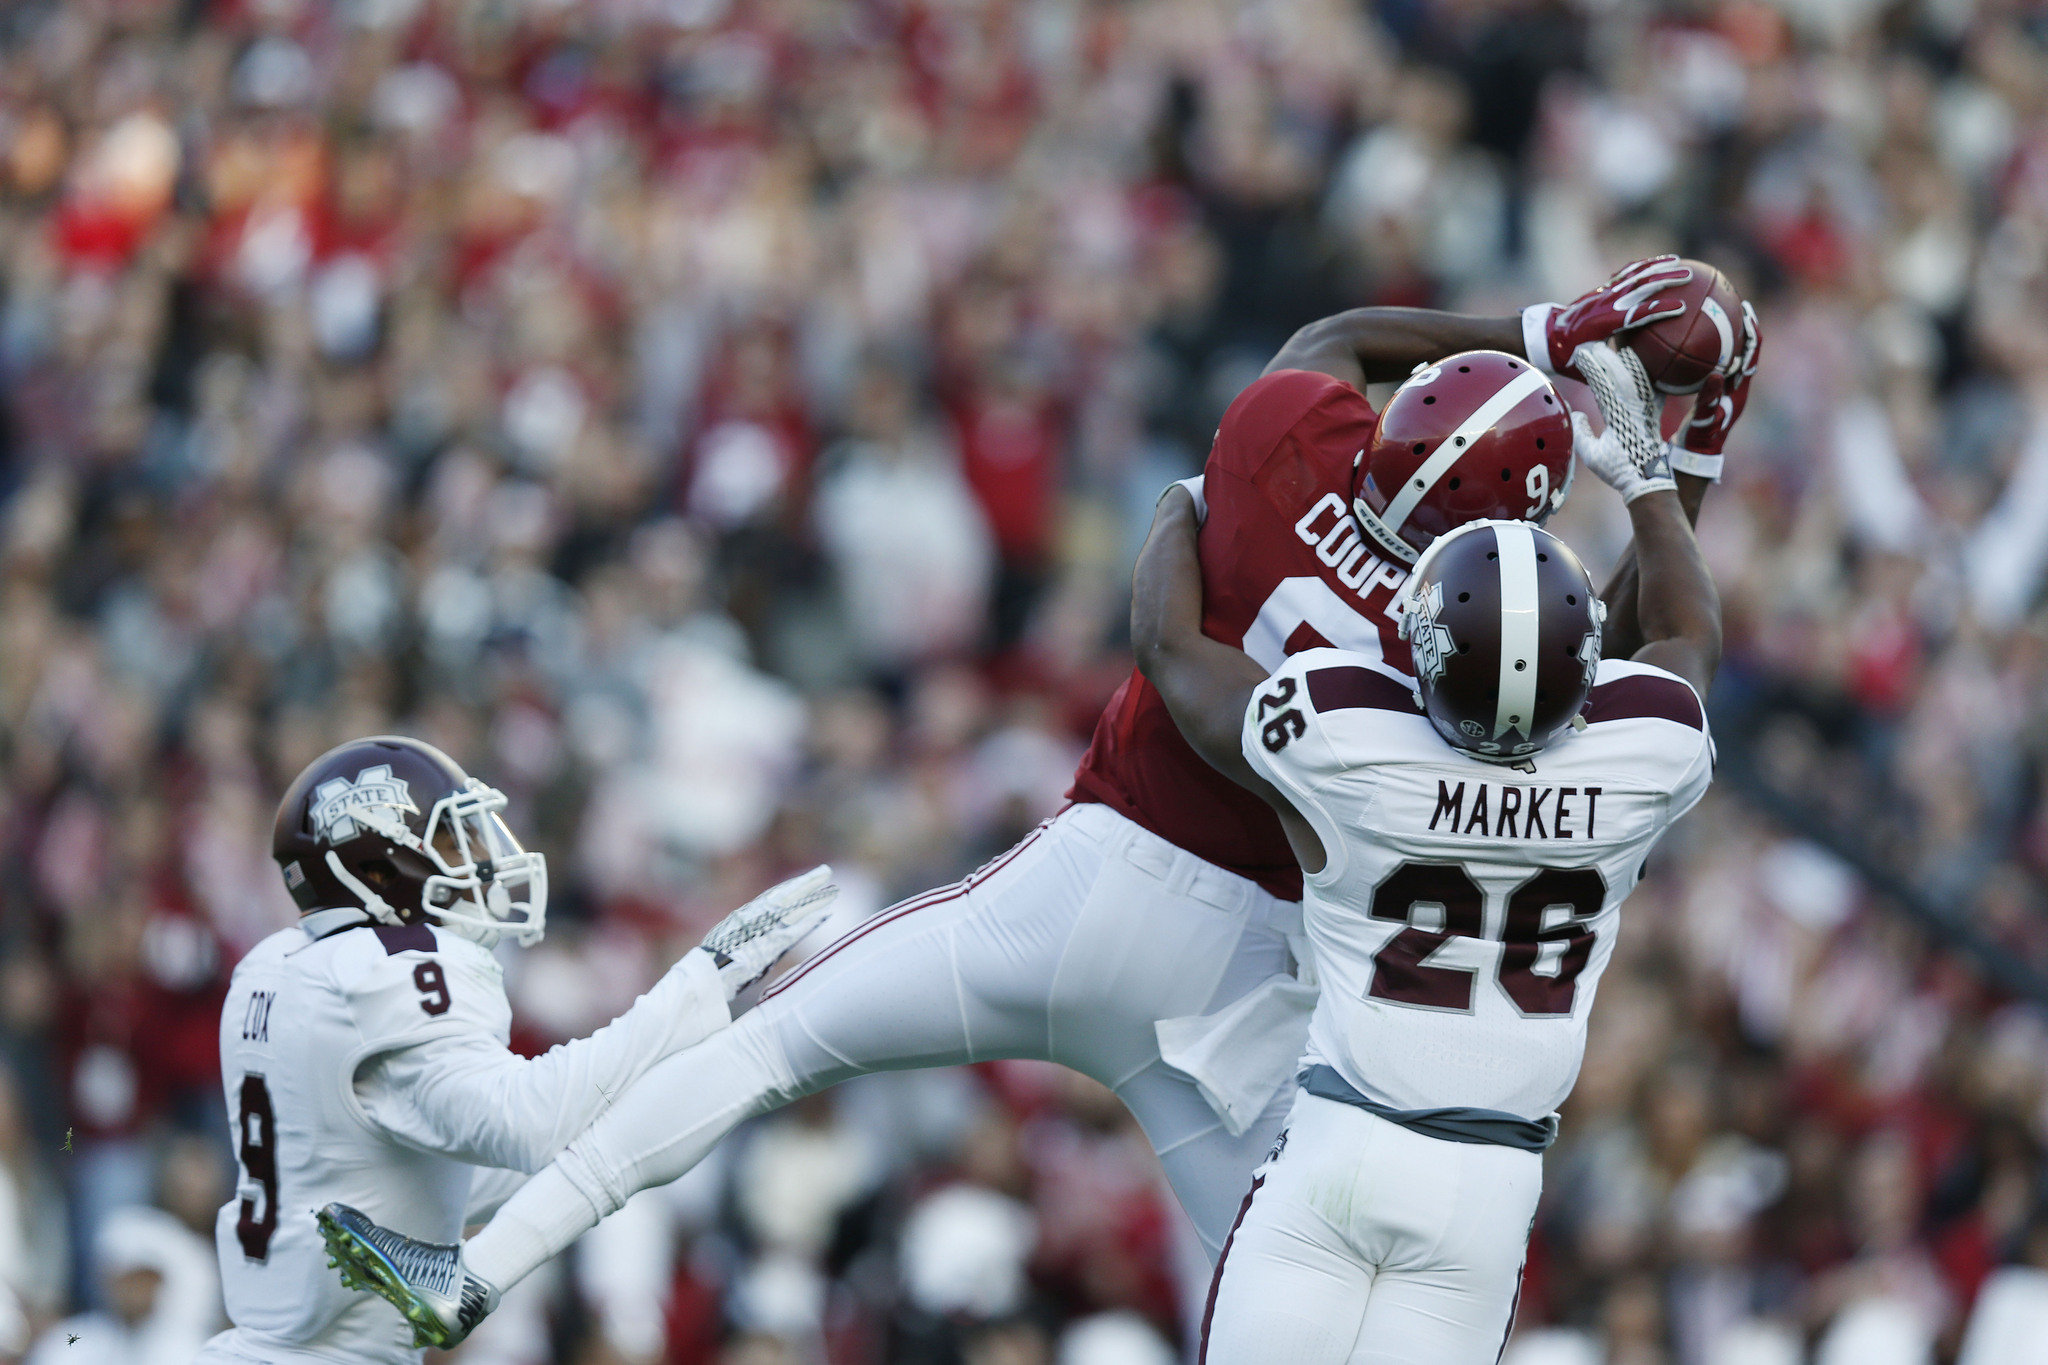 College football aftermath: Is Alabama No. 1 in College Football Playoff rankings after beating Mississippi State?